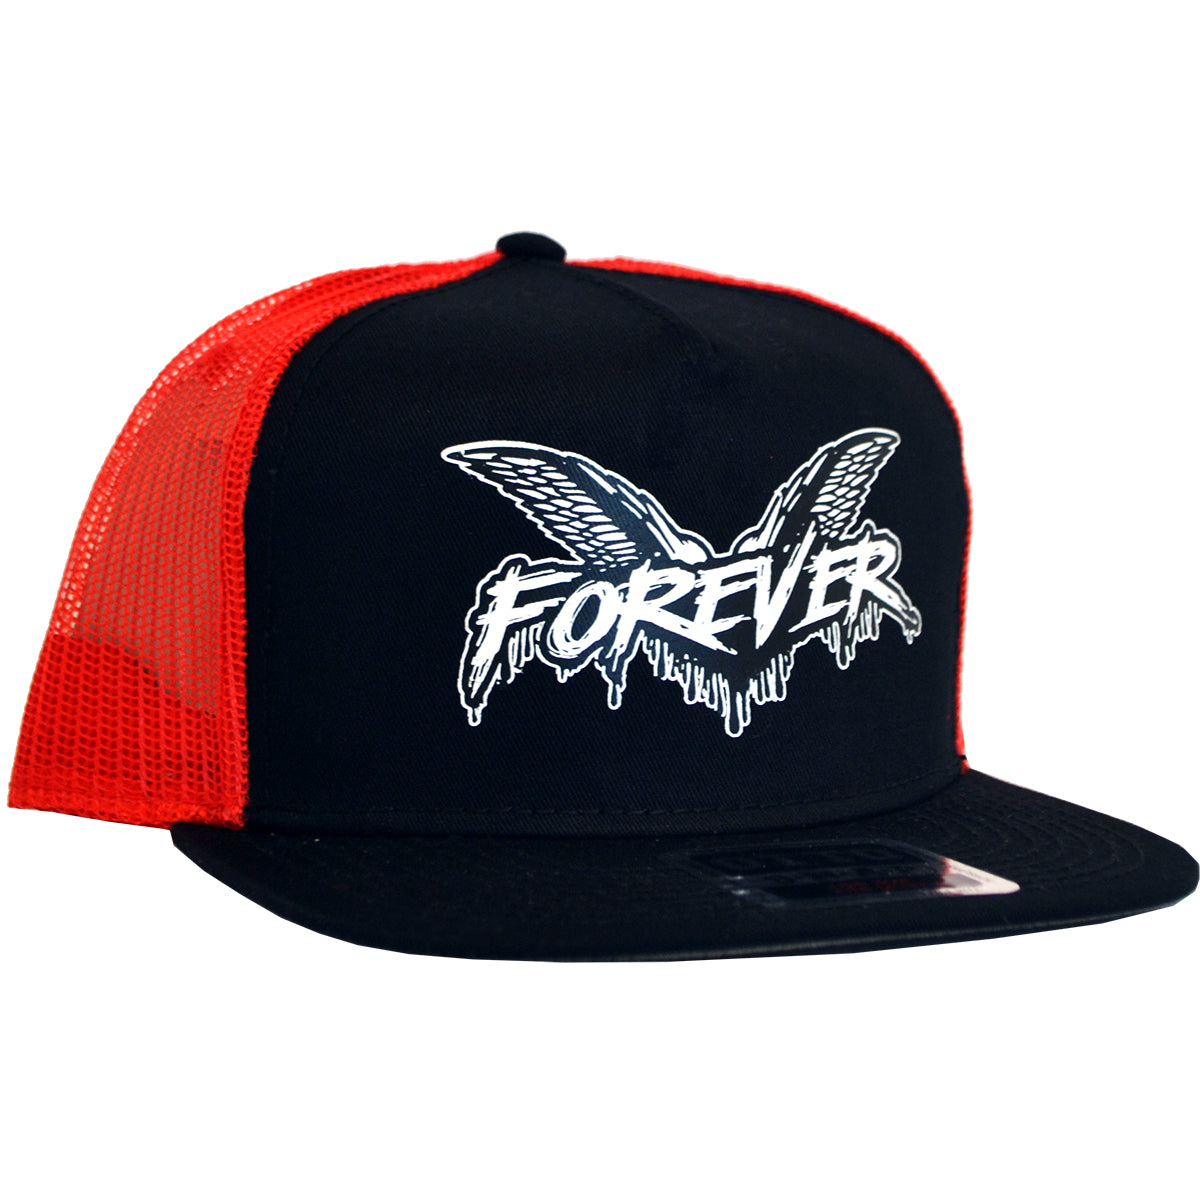 d59a0c2b Cock Sparrer - Forever - Black w/ Red Mesh - Otto Snapback Hat